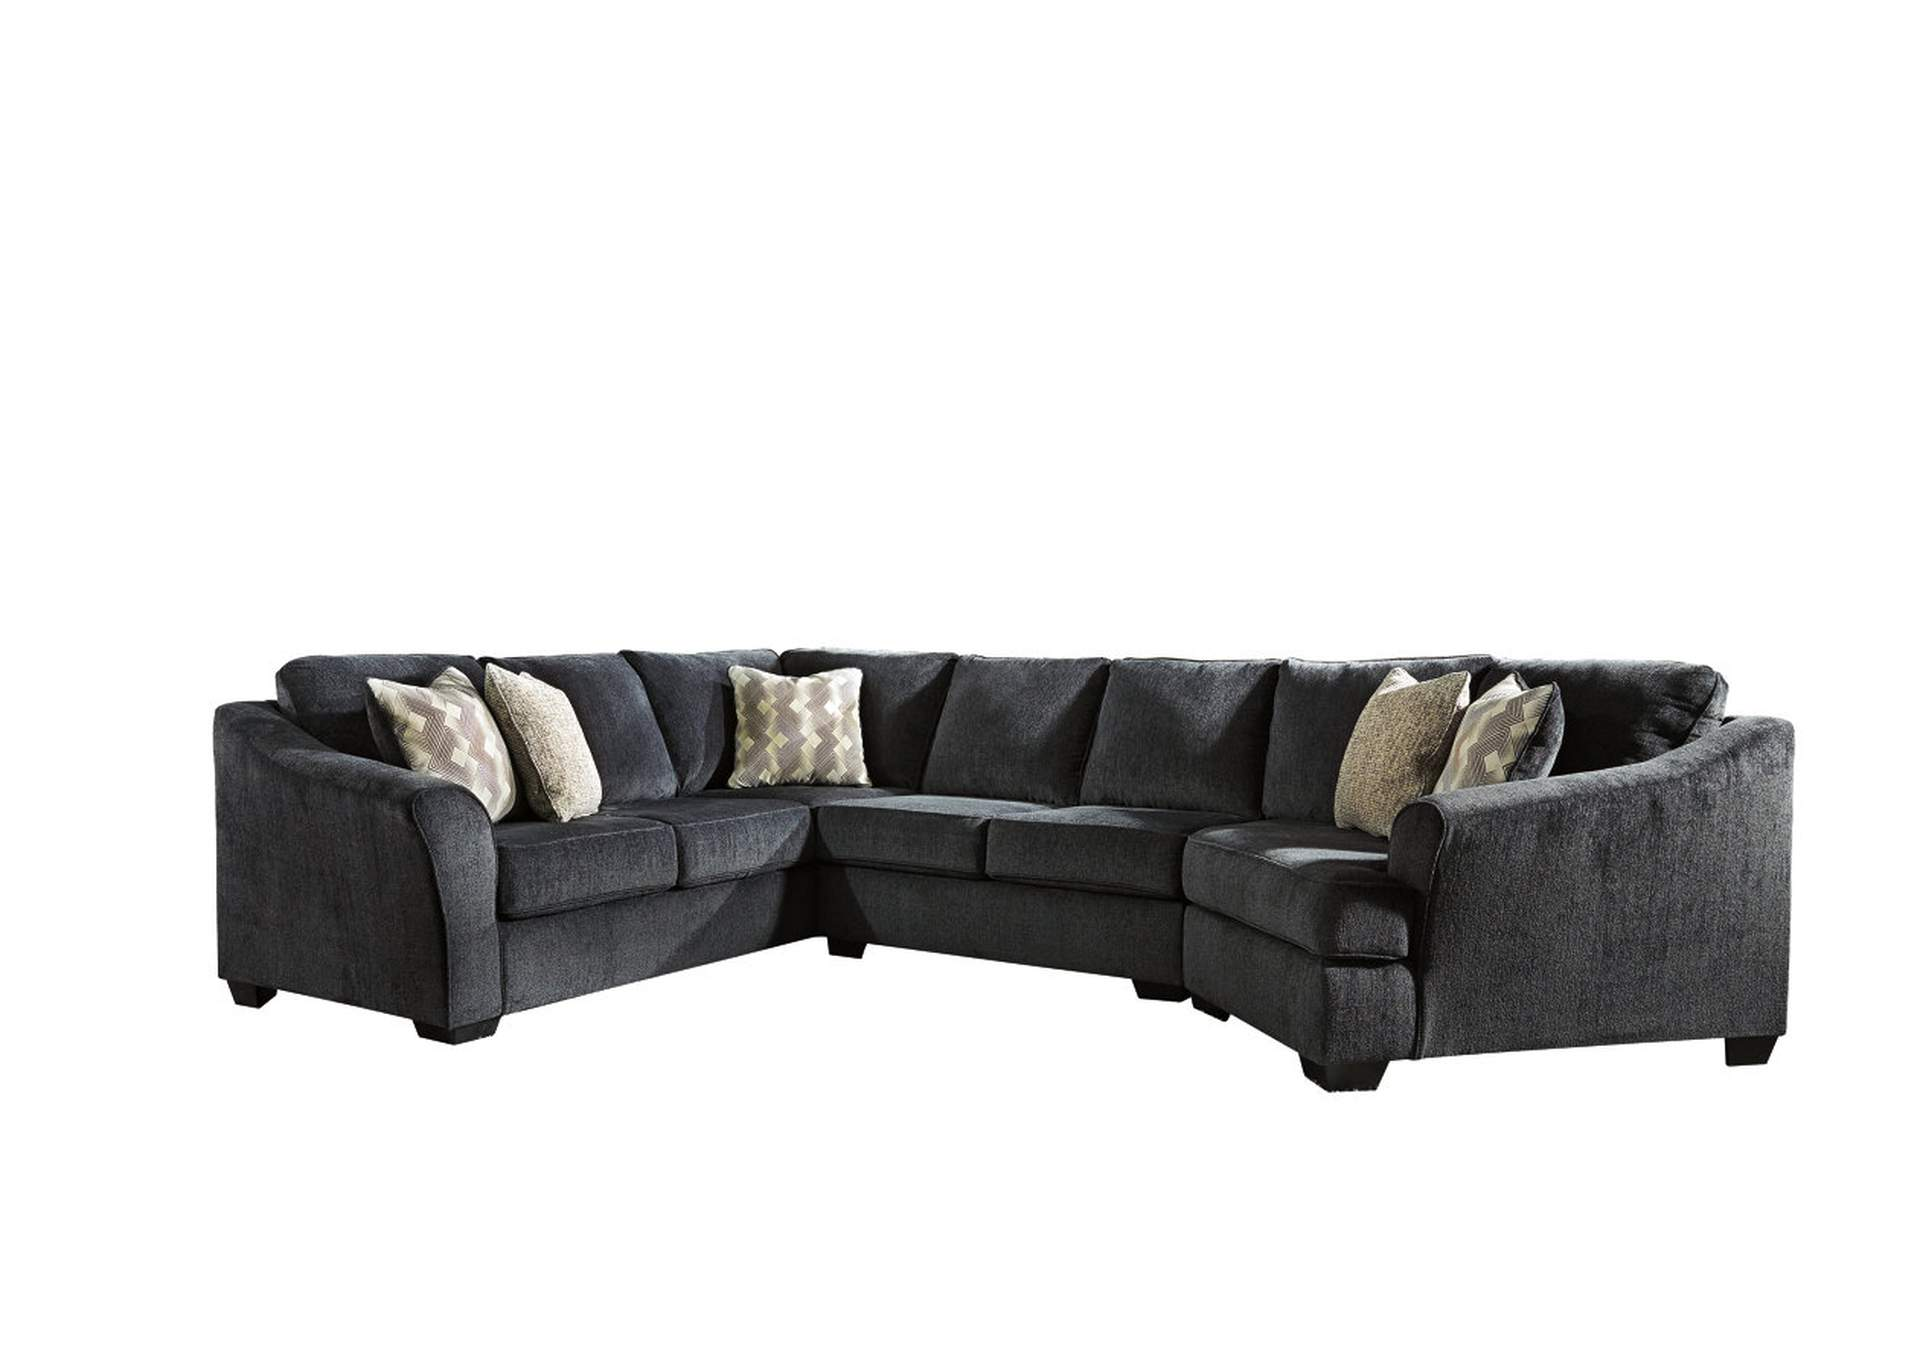 Charmant Eltmann Slate 3 Piece Sectional W/RAF Cuddler,Signature Design By Ashley